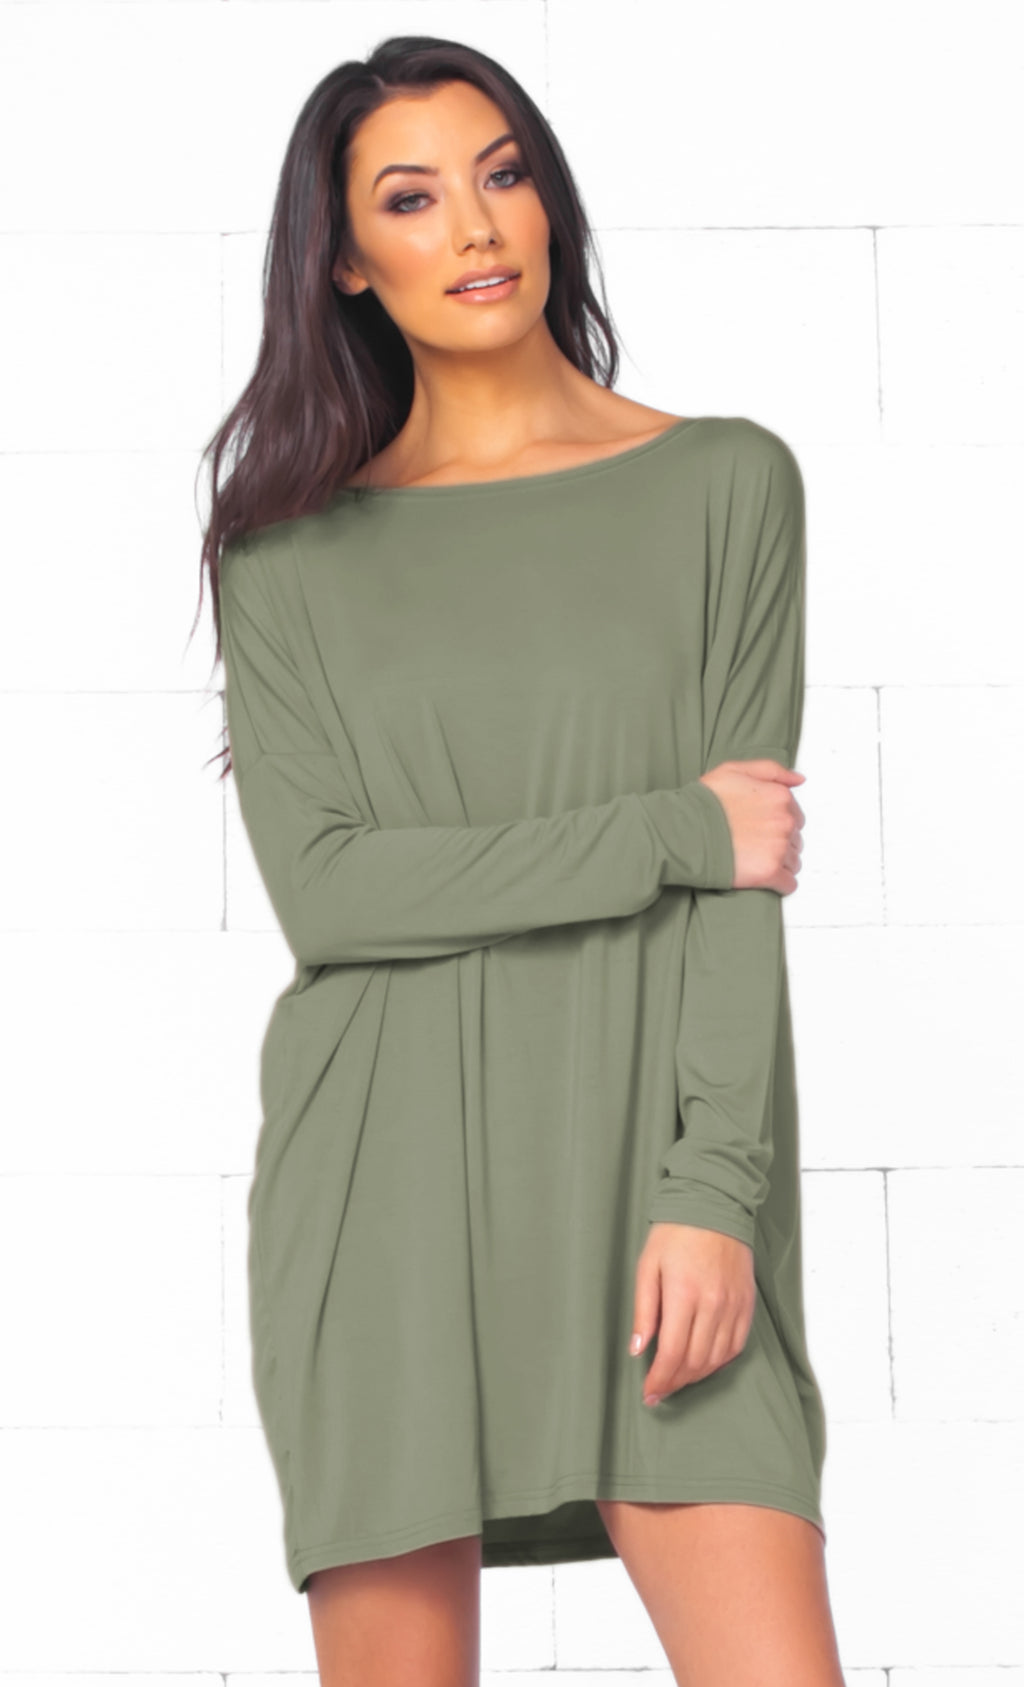 Piko 1988 Olive Green Long Sleeve Scoop Neck Piko Bamboo Oversized Basic Tunic Tee Shirt Mini Dress